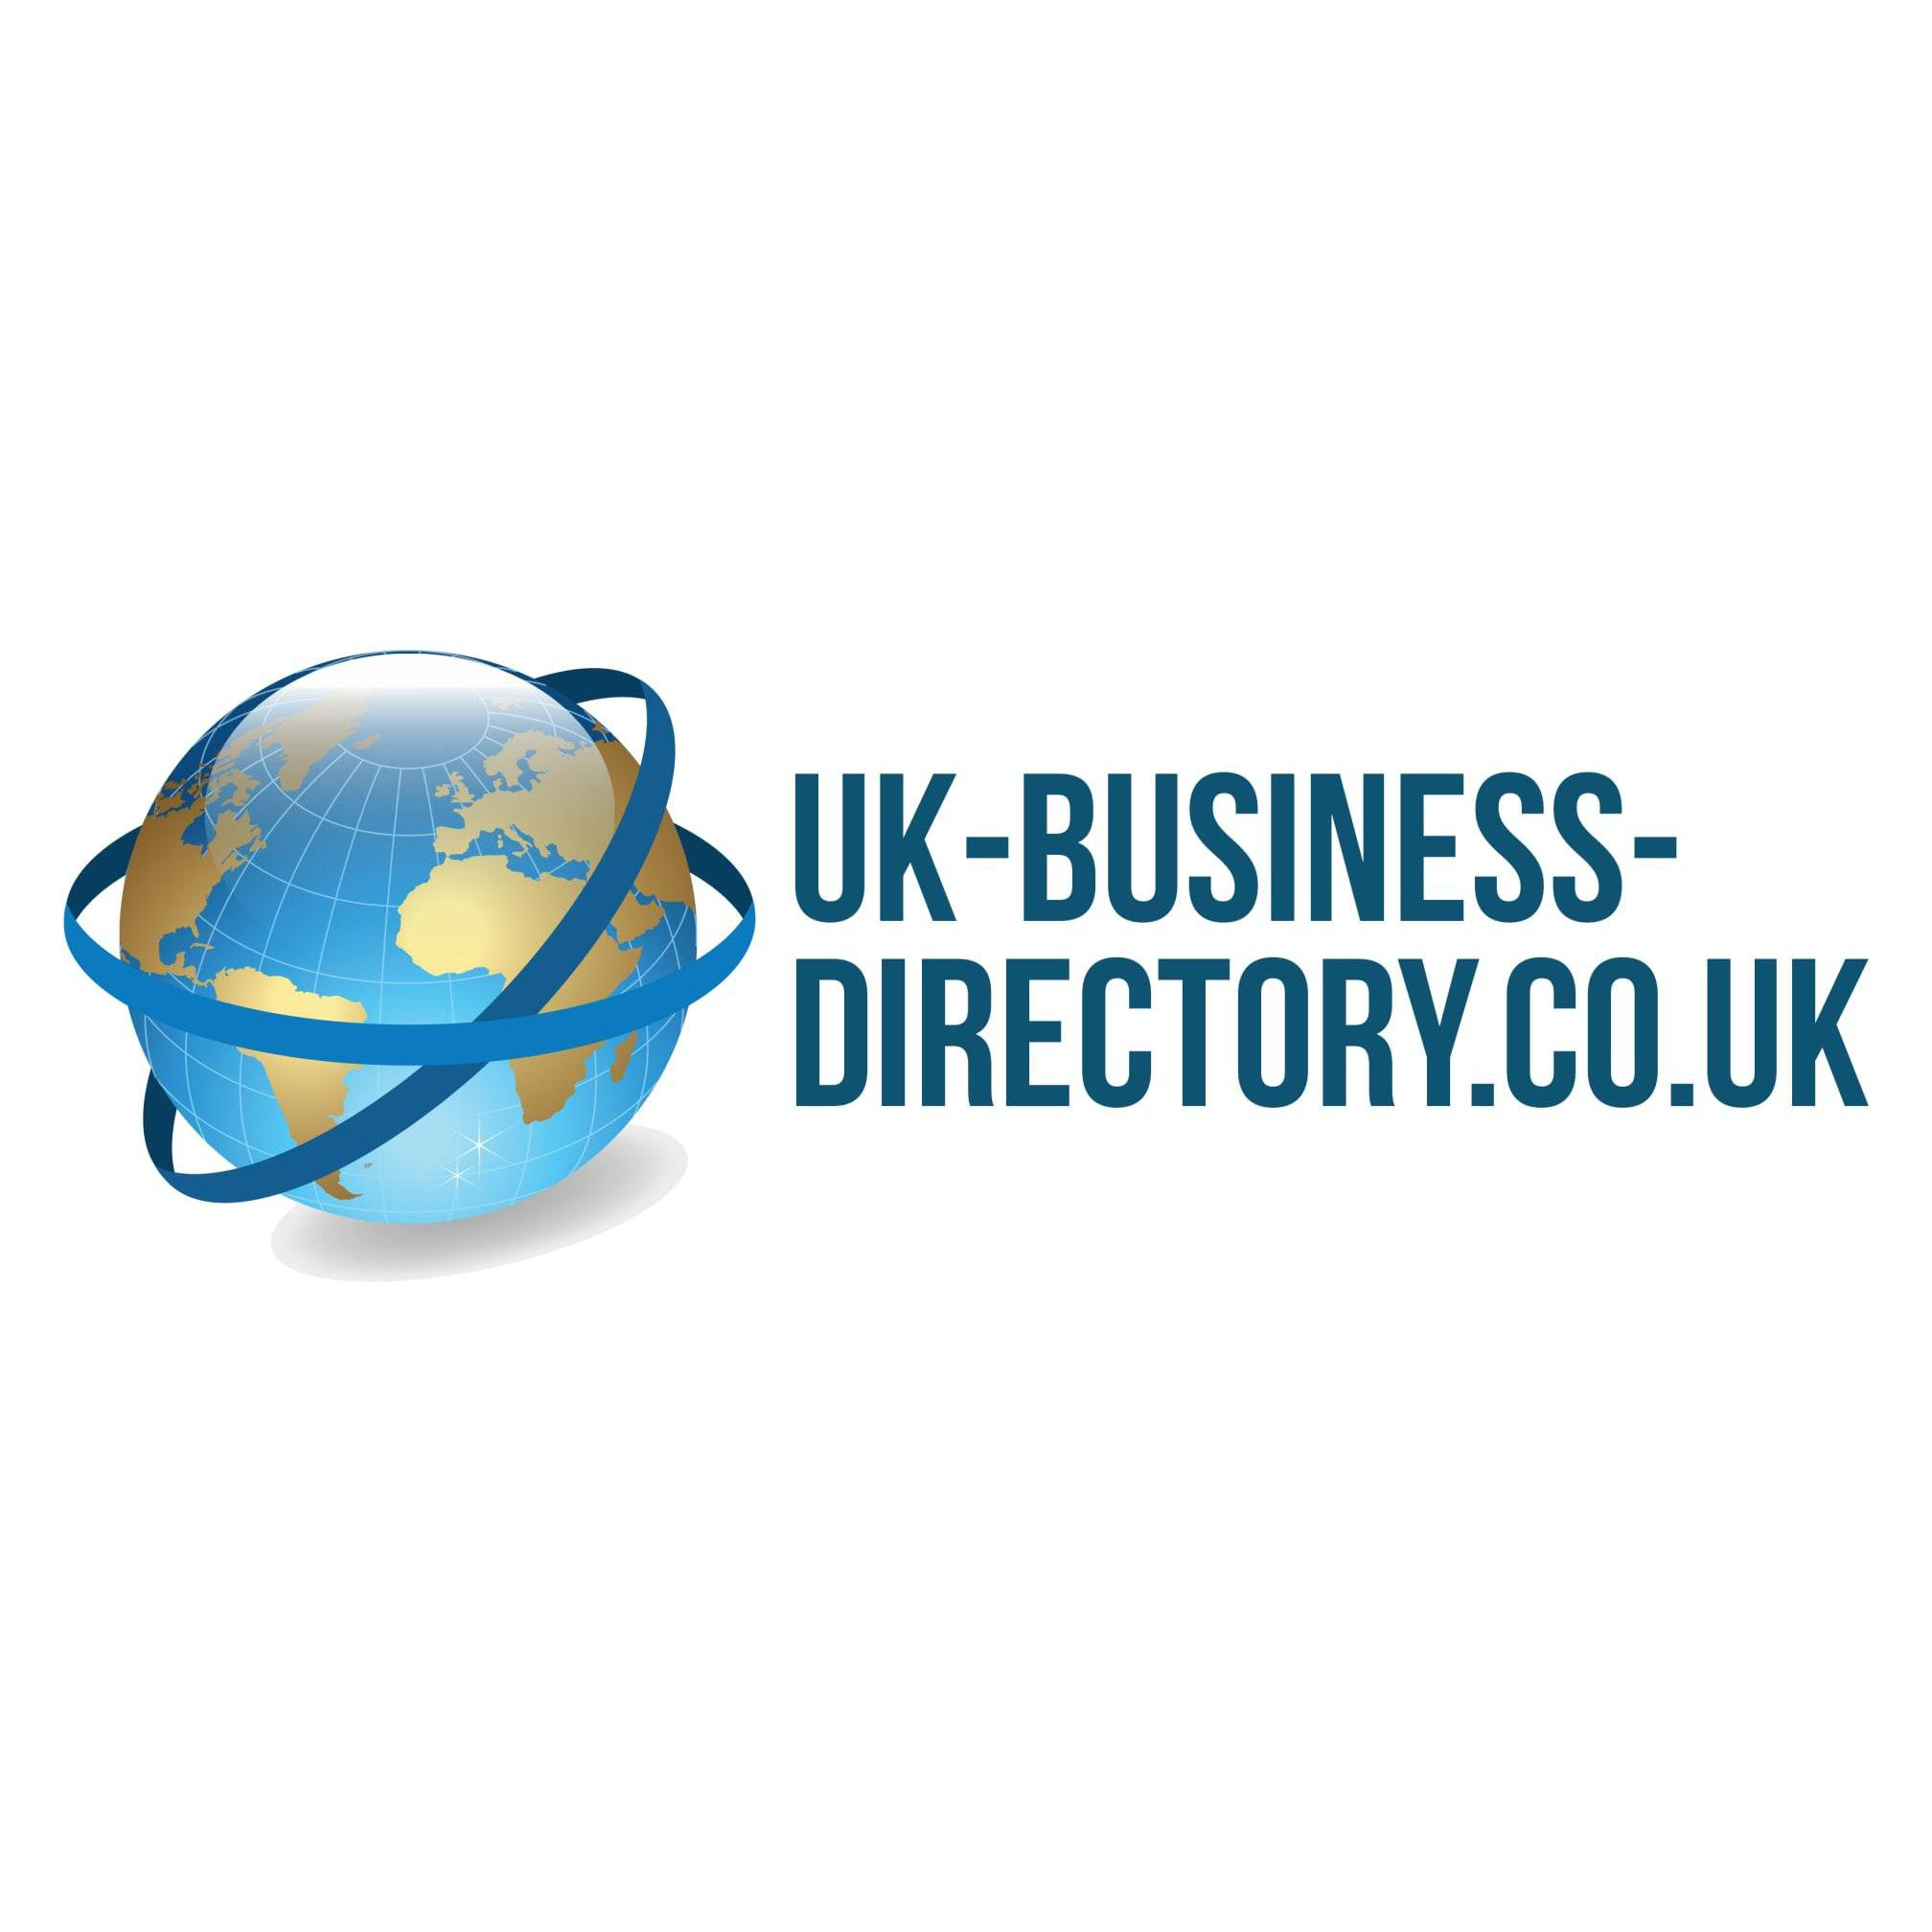 uk-business-directory.co.uk Ltd - Yeovil, Somerset BA20 1RE - 020 3916 5000 | ShowMeLocal.com